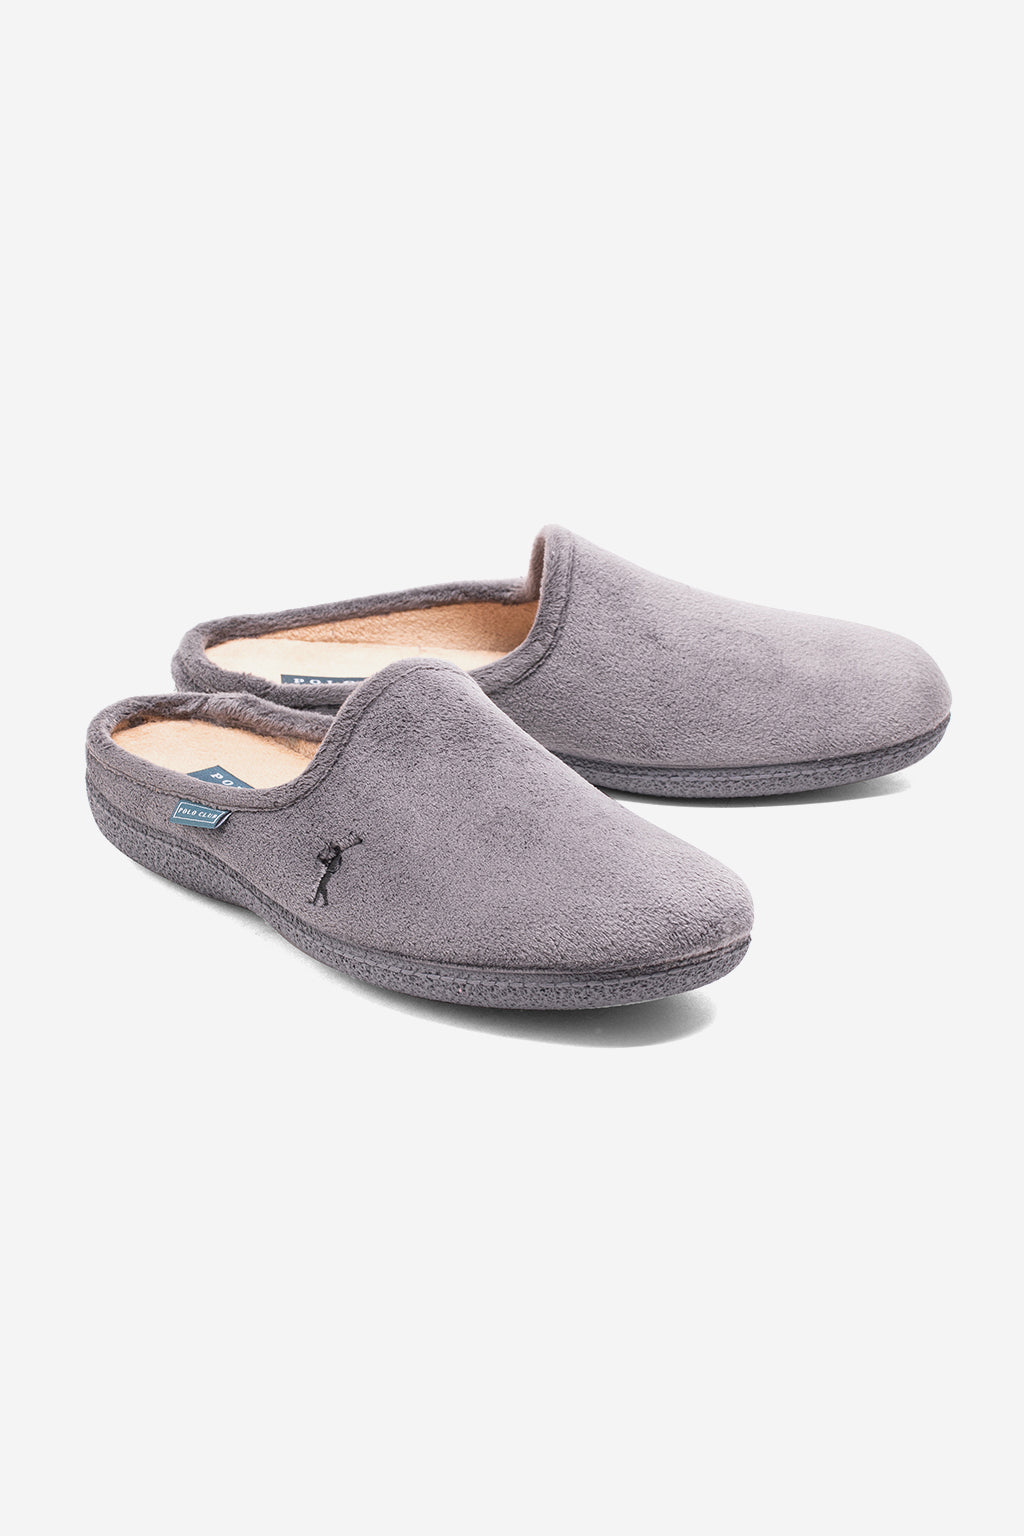 Zapatillas de casa gris Slippers Mini Rigby Go